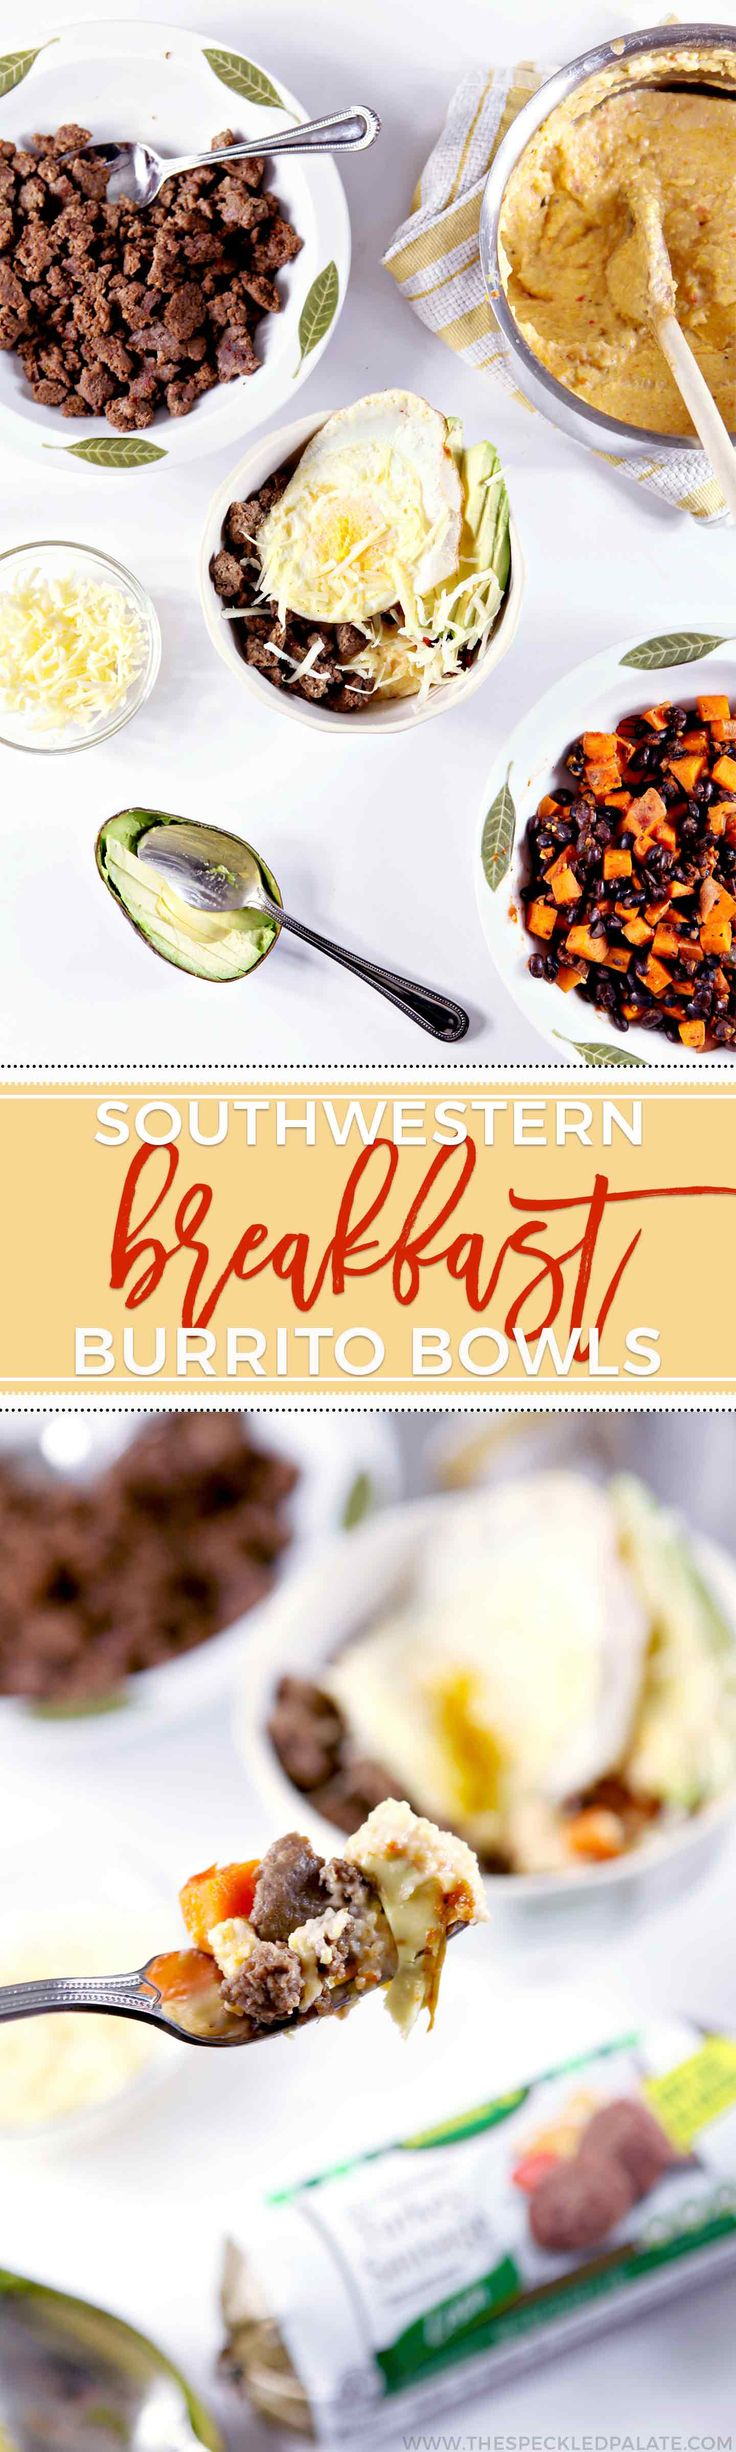 Start the morning with Southwestern Breakfast Burrito Bowls! Breakfast doesn't have to be boring... and a burrito bowl serves as a blast of flavor. #ad #JennieO #SwitchCircle  via @speckledpalate